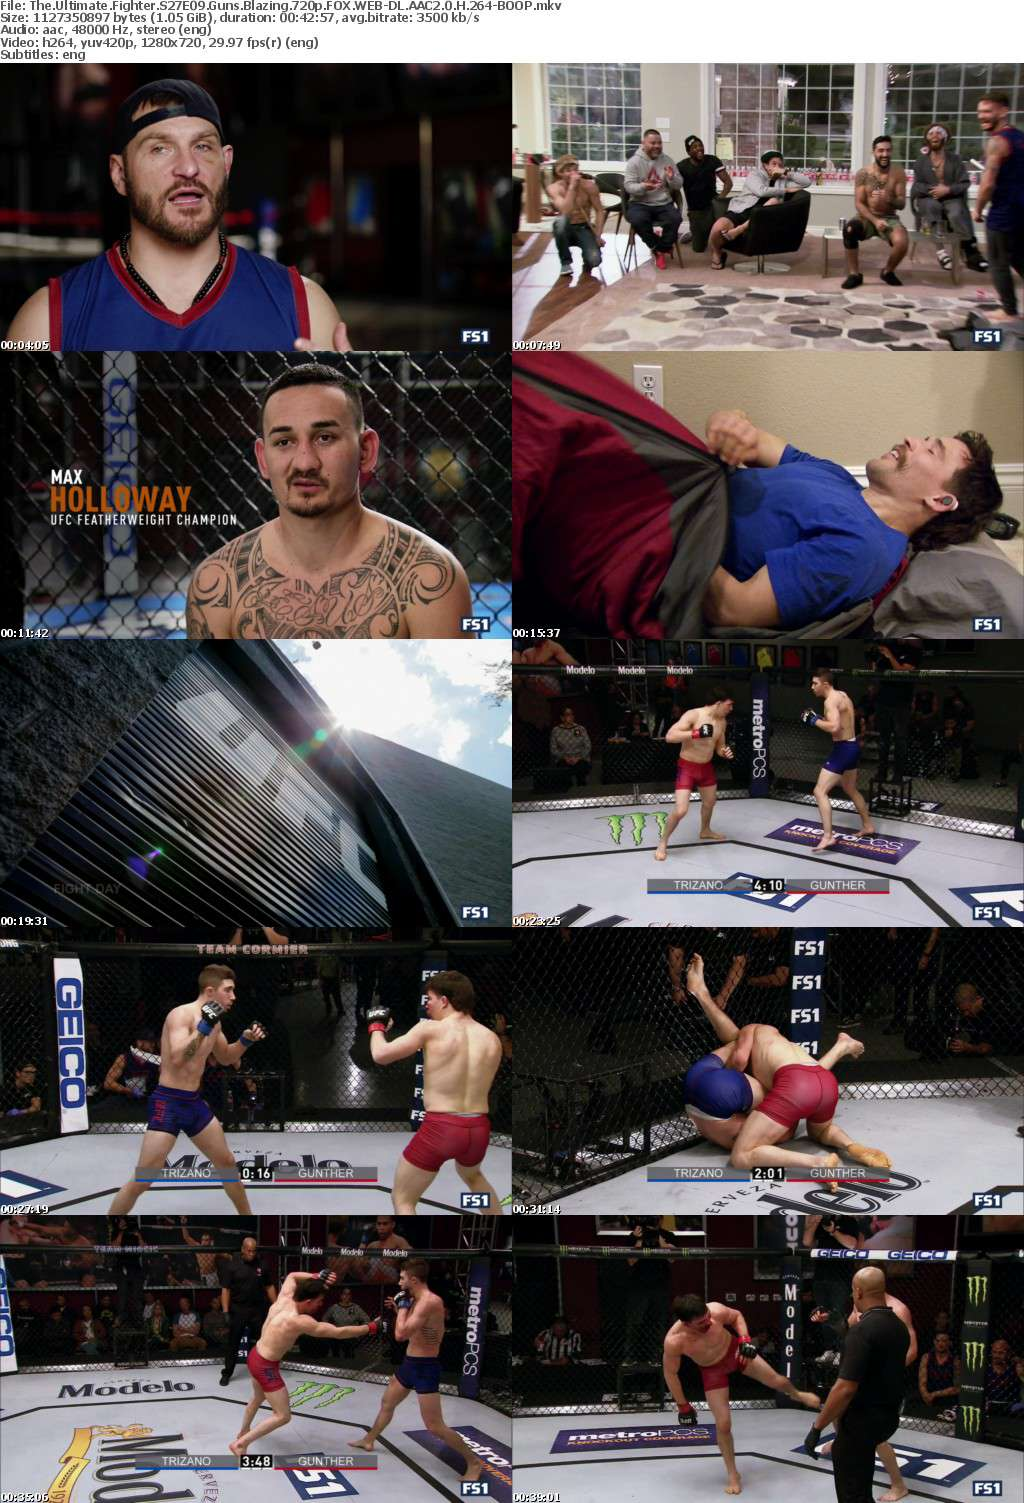 The Ultimate Fighter S27E09 Guns Blazing 720p FOX WEB-DL AAC2 0 H 264-BOOP